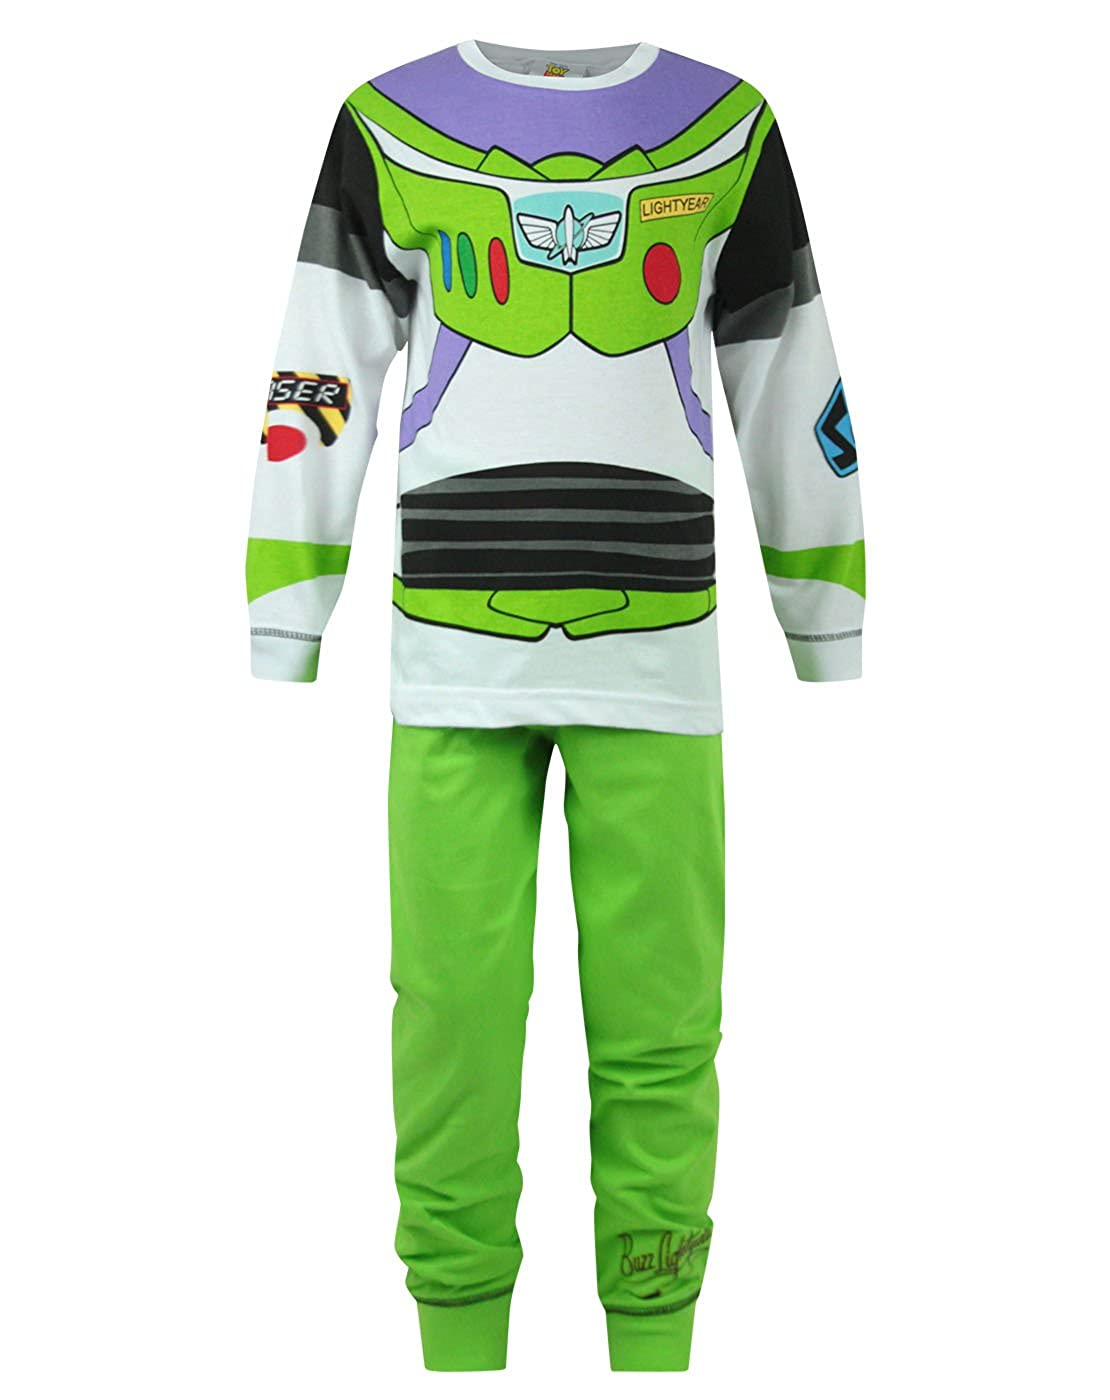 Official Toy Story Buzz Lightyear Outfit Boys Pyjamas